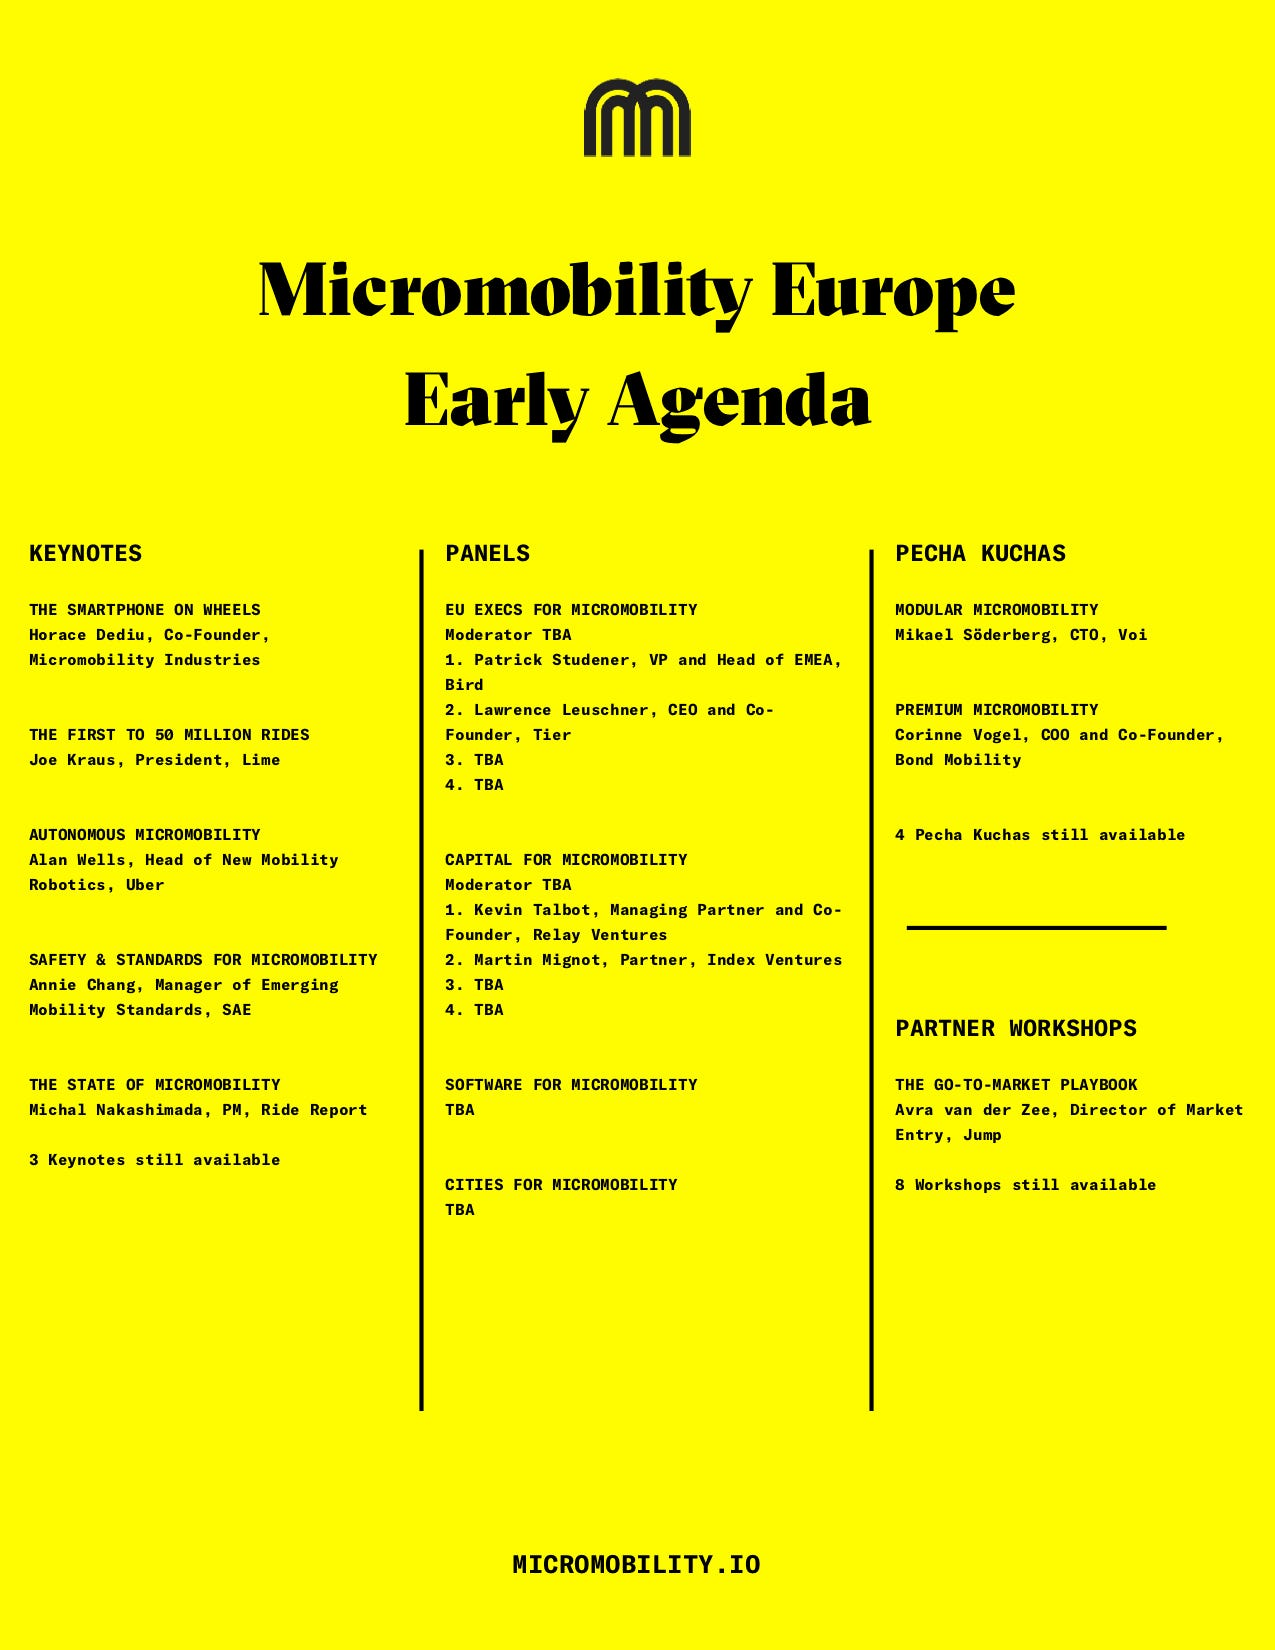 Drumroll please  The agenda for Micromobility Europe is here